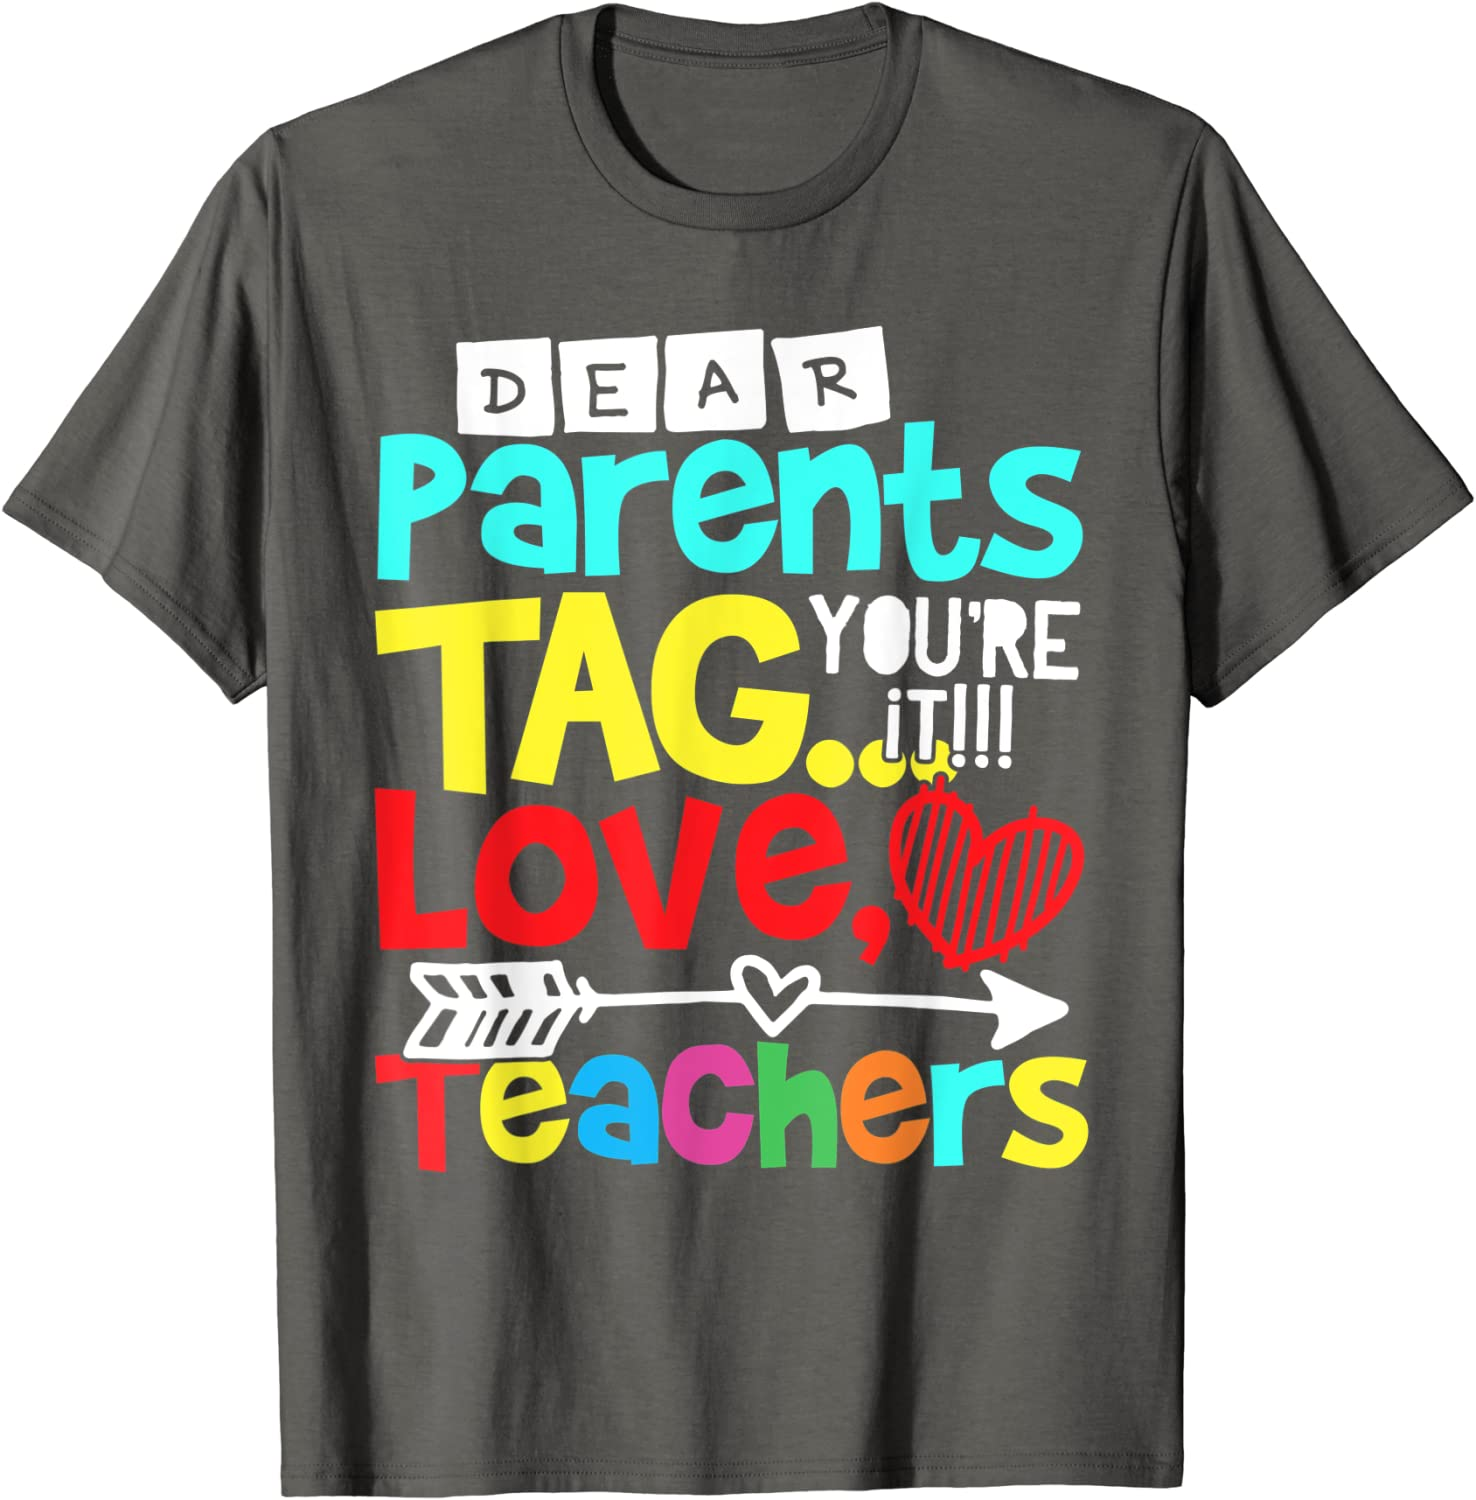 13 Inch Laptop Sleeve Dear Parents Tag 15 Inch 17 Inch 12 Inch Youre It Love Teachers Funny Tablet Bag 10 Inch